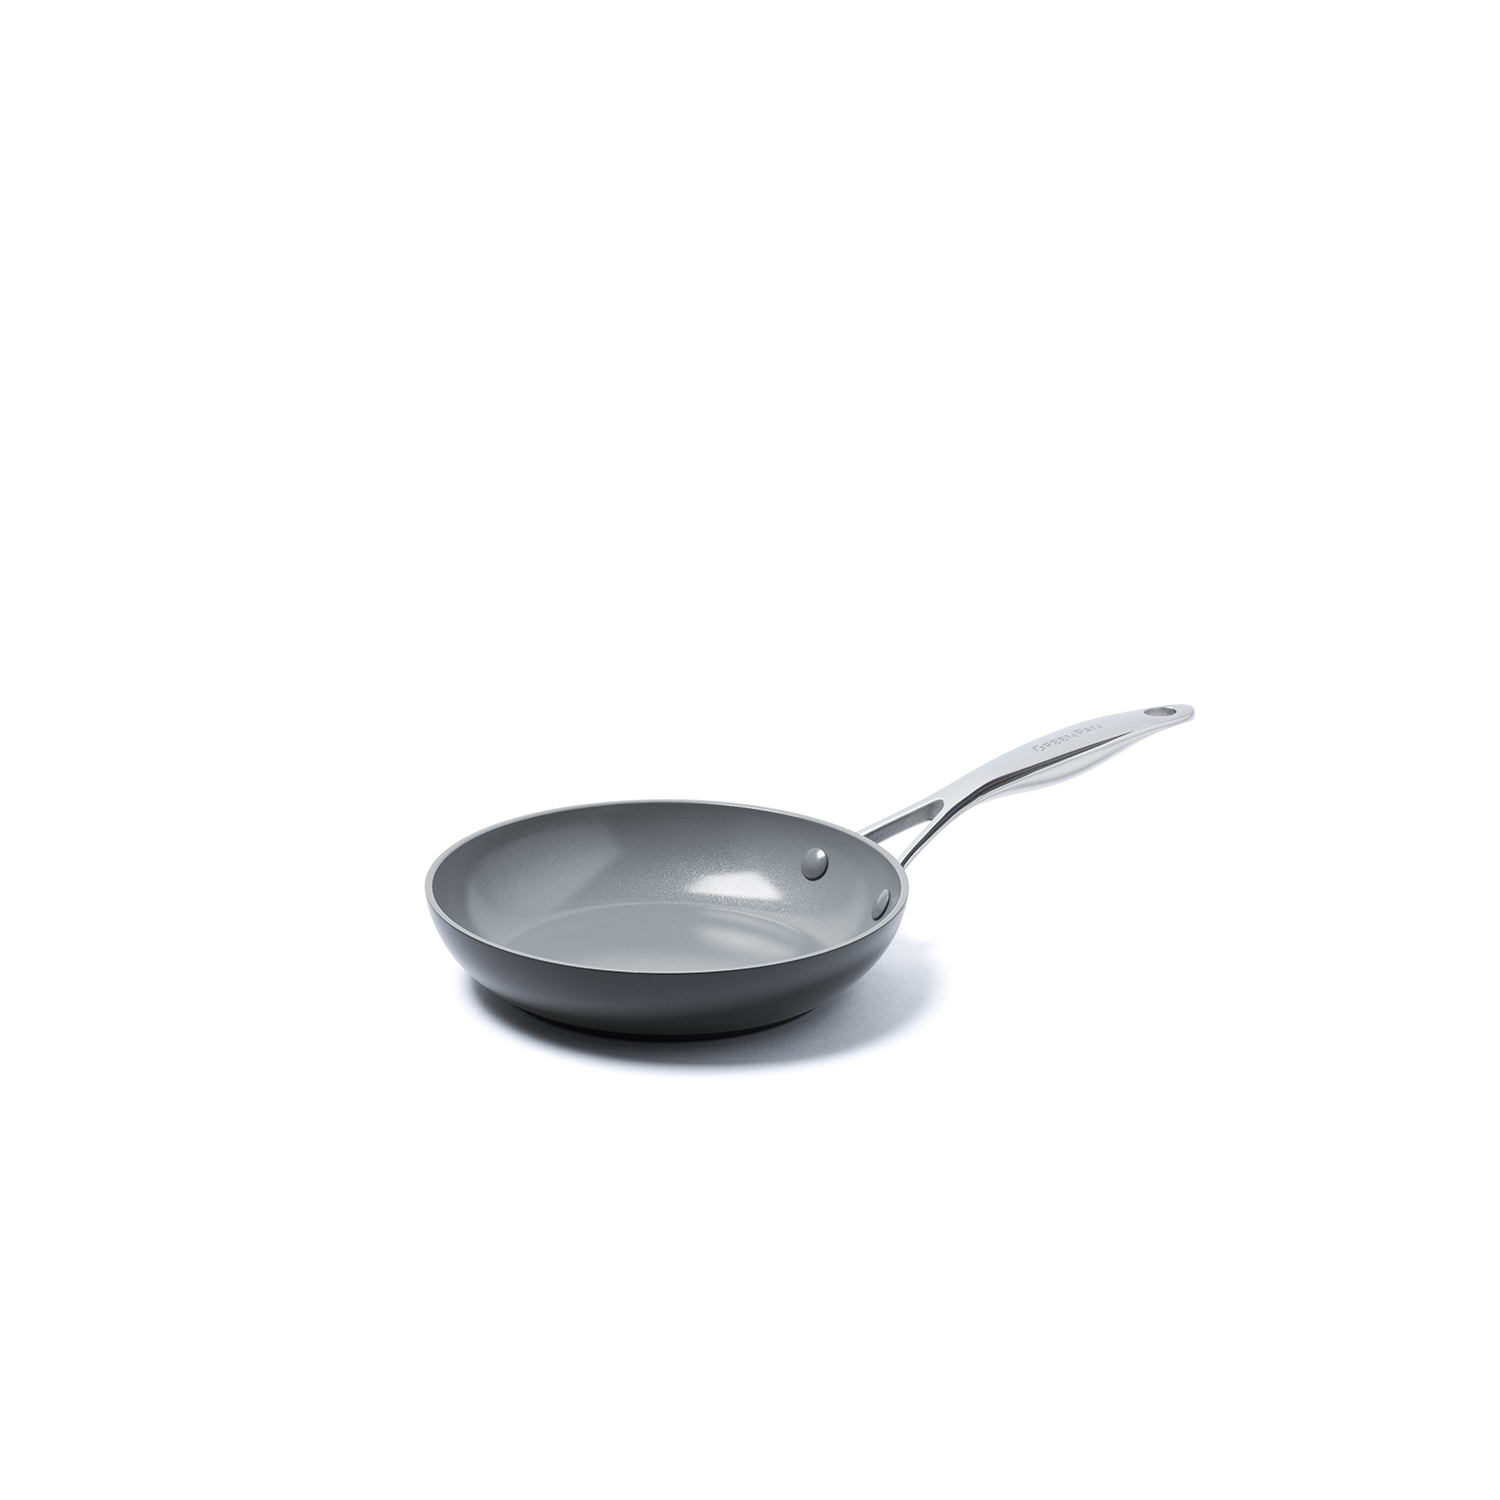 Image of GreenPan, Venice Pro, 20cm Frying Pan